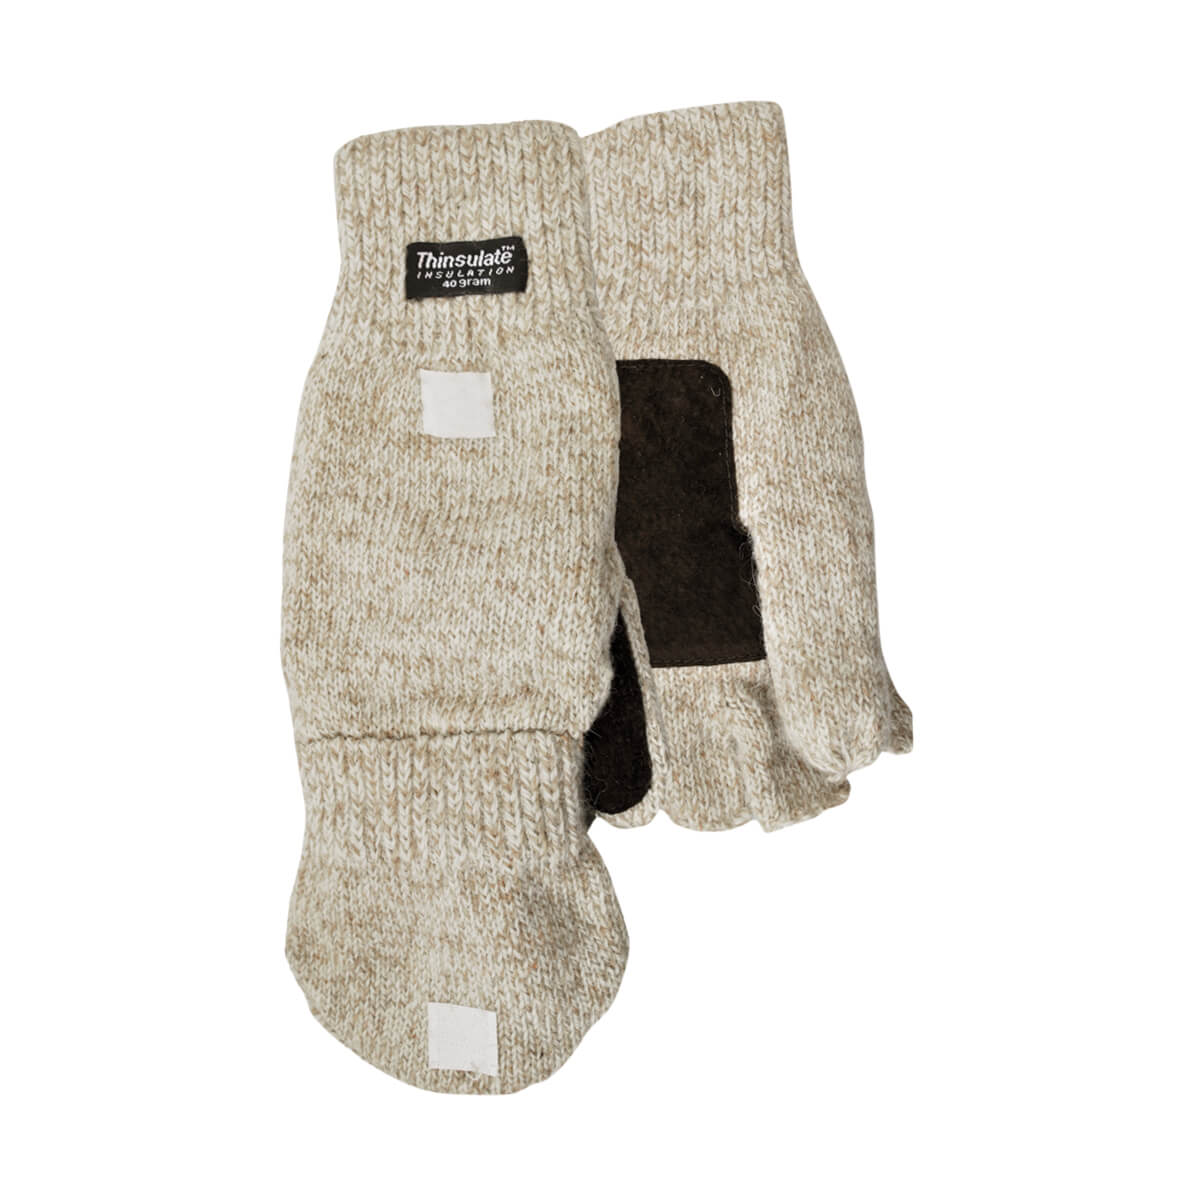 Wooly Mammoth Flip Top Gloves